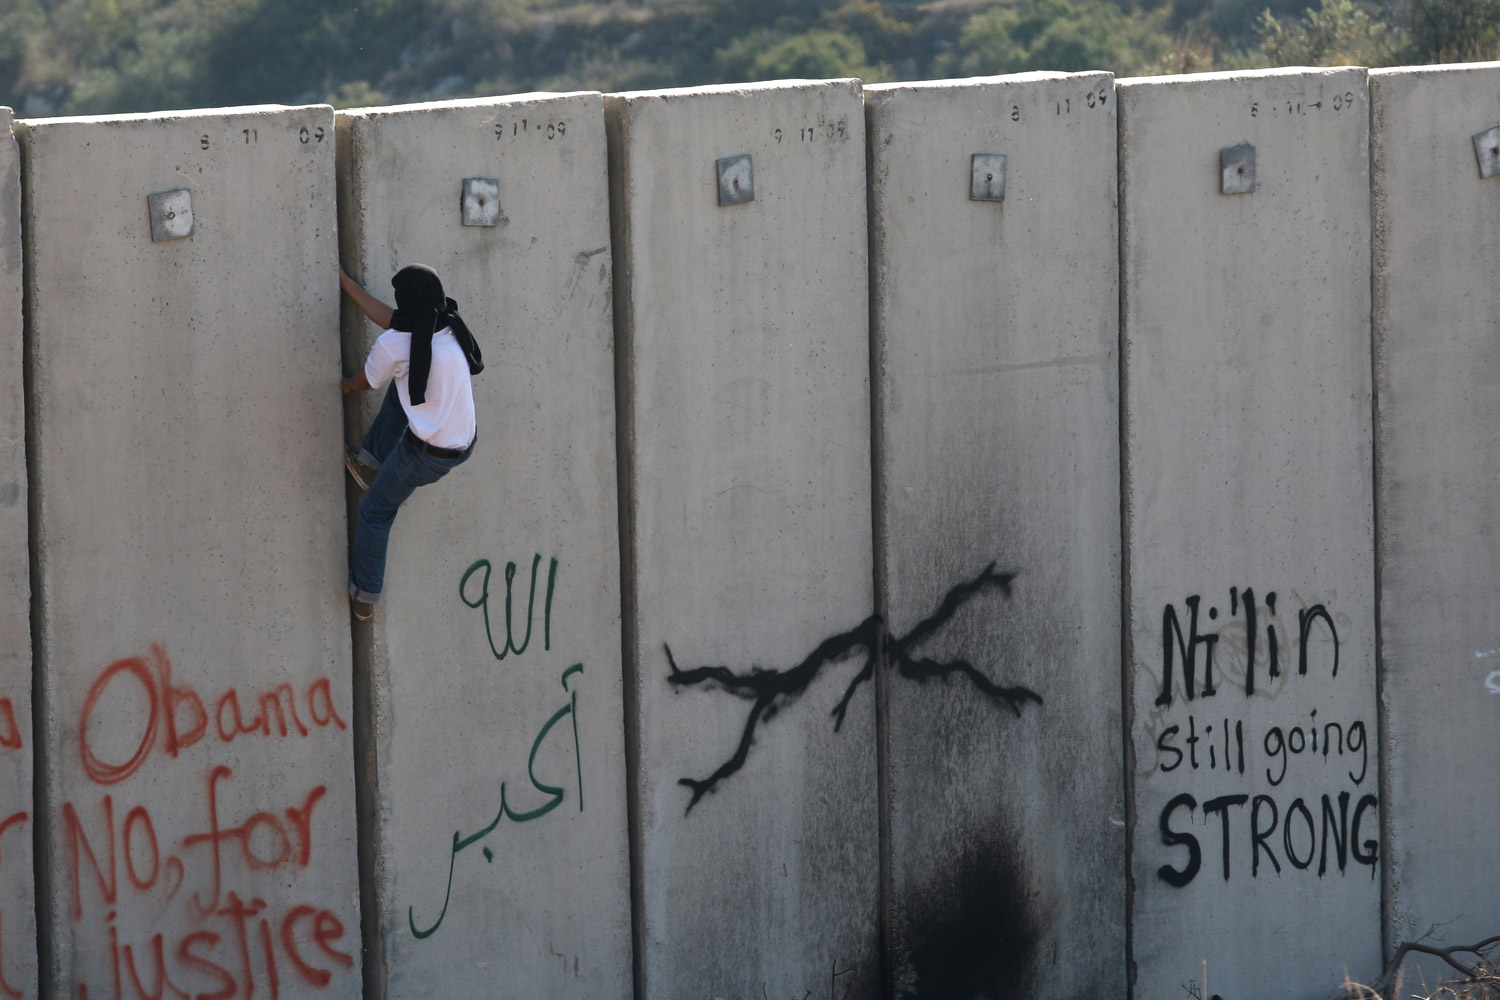 December 2, 2011. A Palestinian protester climbs Israel's separation wall during a weekly demonstration against Israeli occupation in the West Bank village of Nilin. While change sweeps the Arab world, little progress has been seen in the Israeli-Palestinian dispute.